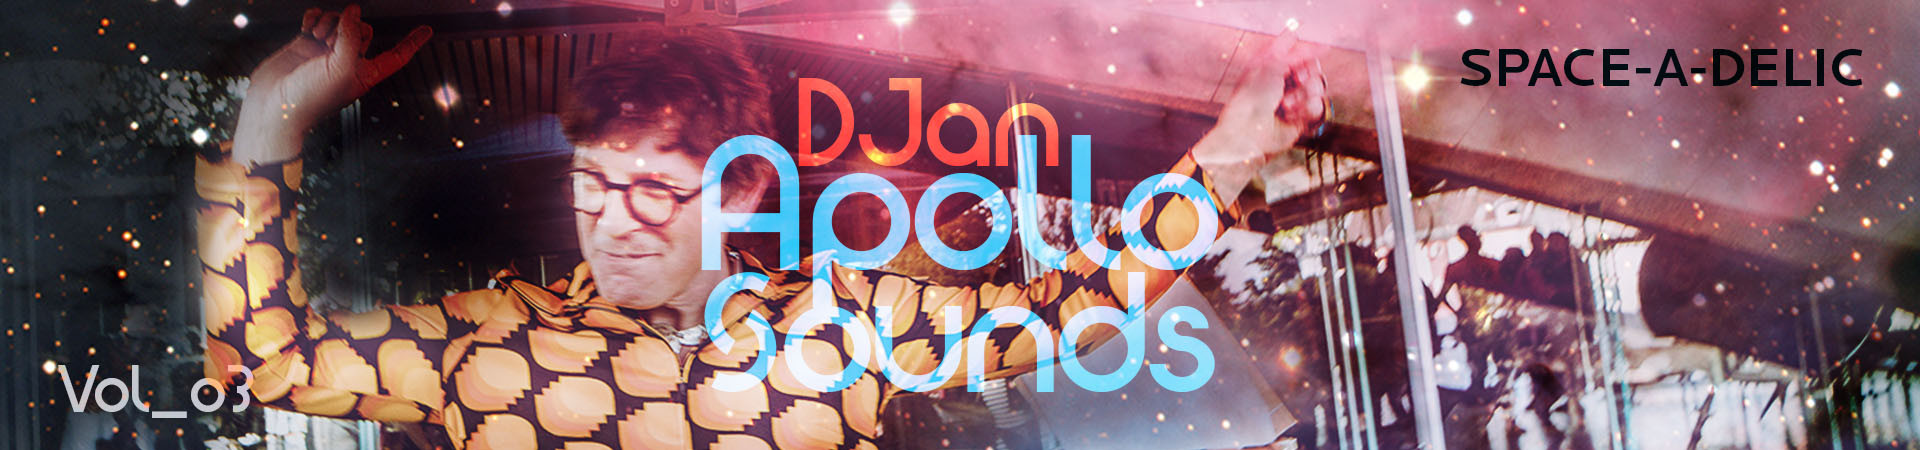 ApolloSounds Header 03